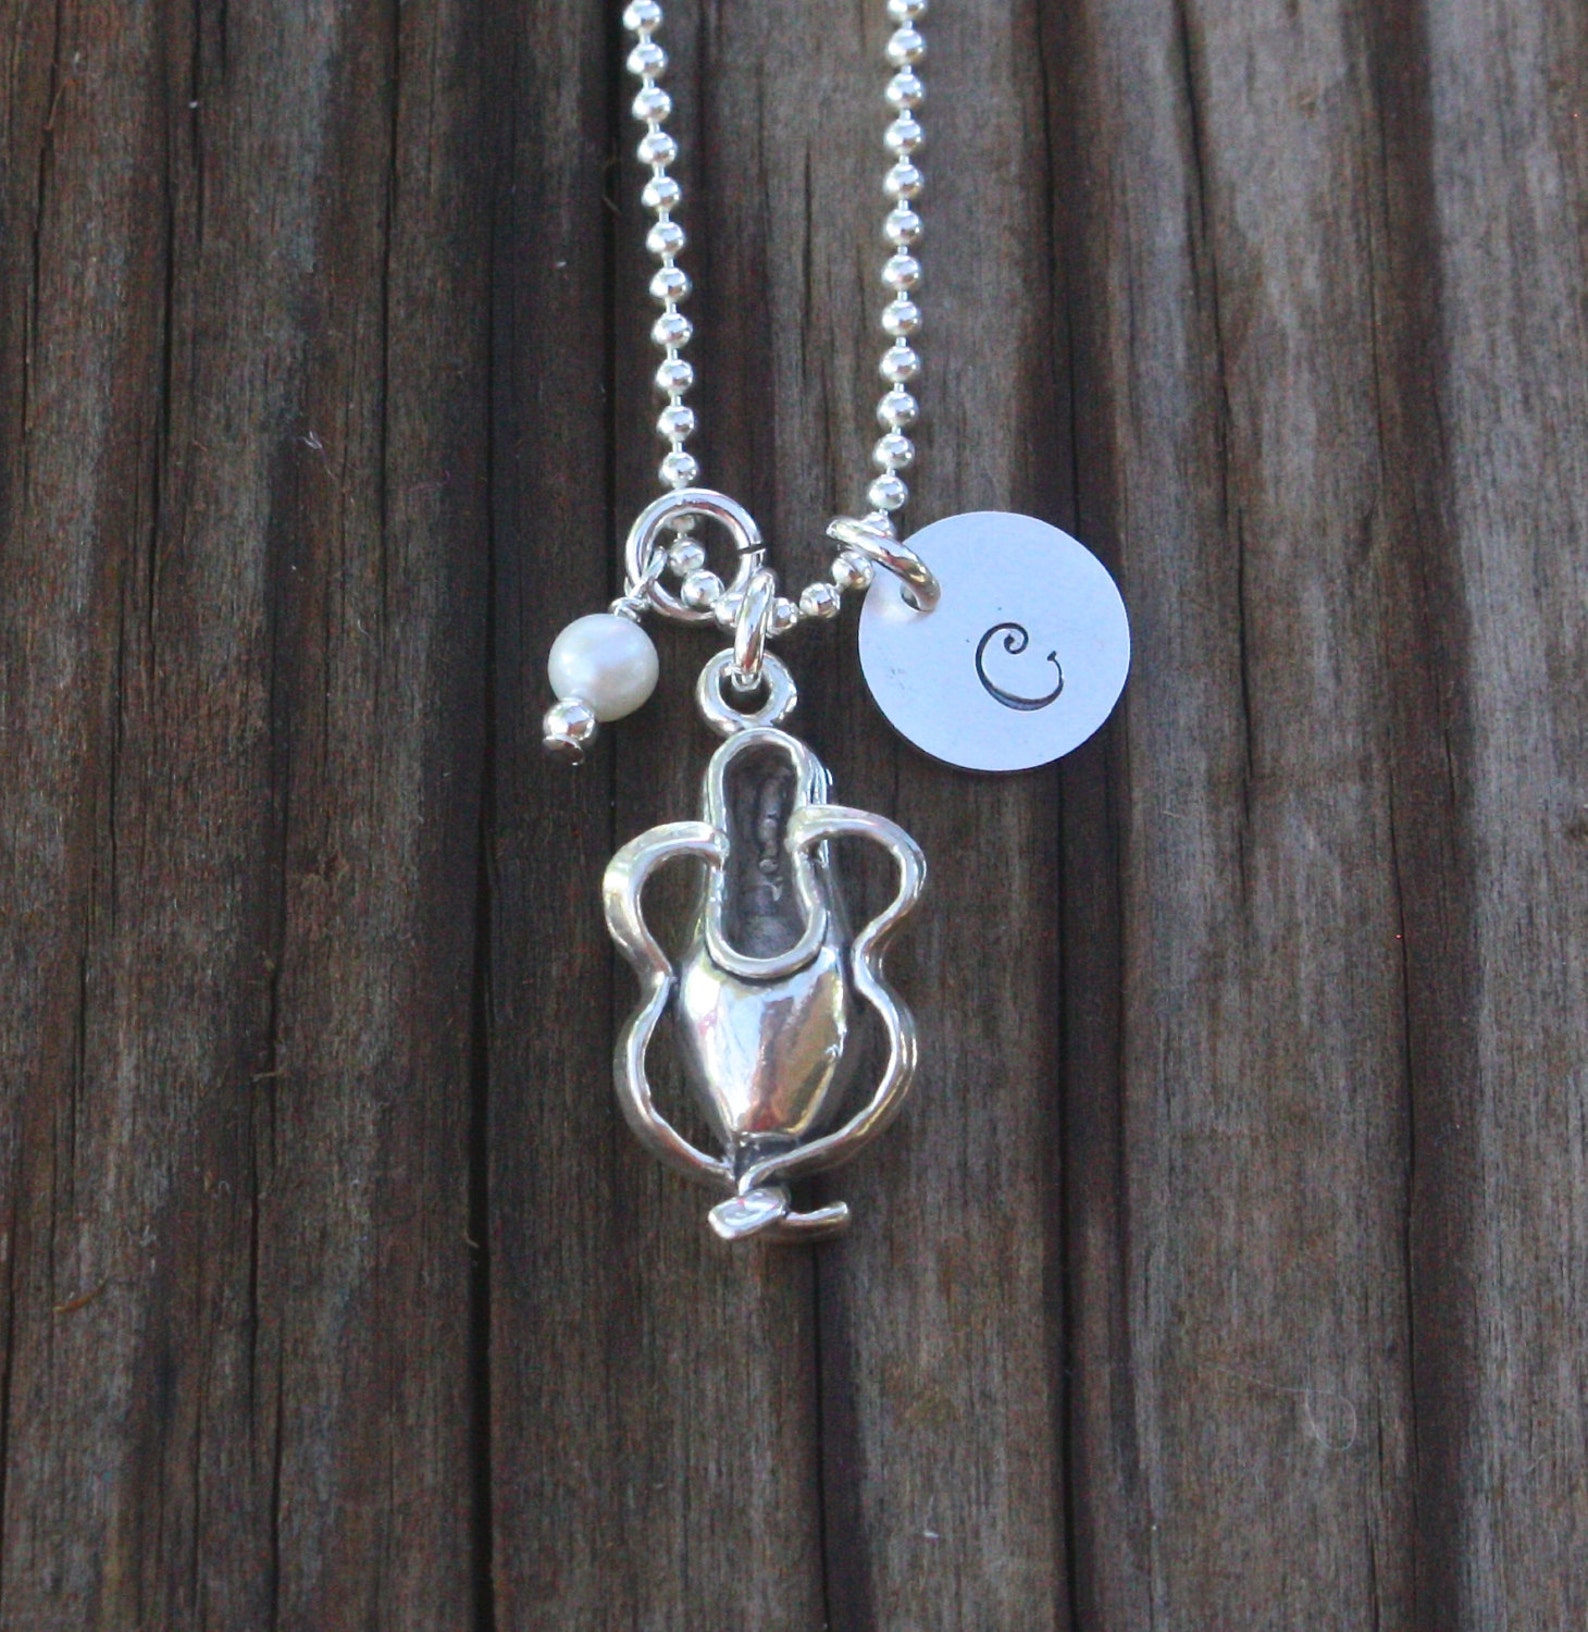 dance necklace, ballet necklace sterling silver, personalized dance jewelry, personalized ballet jewelry, dance jewelry